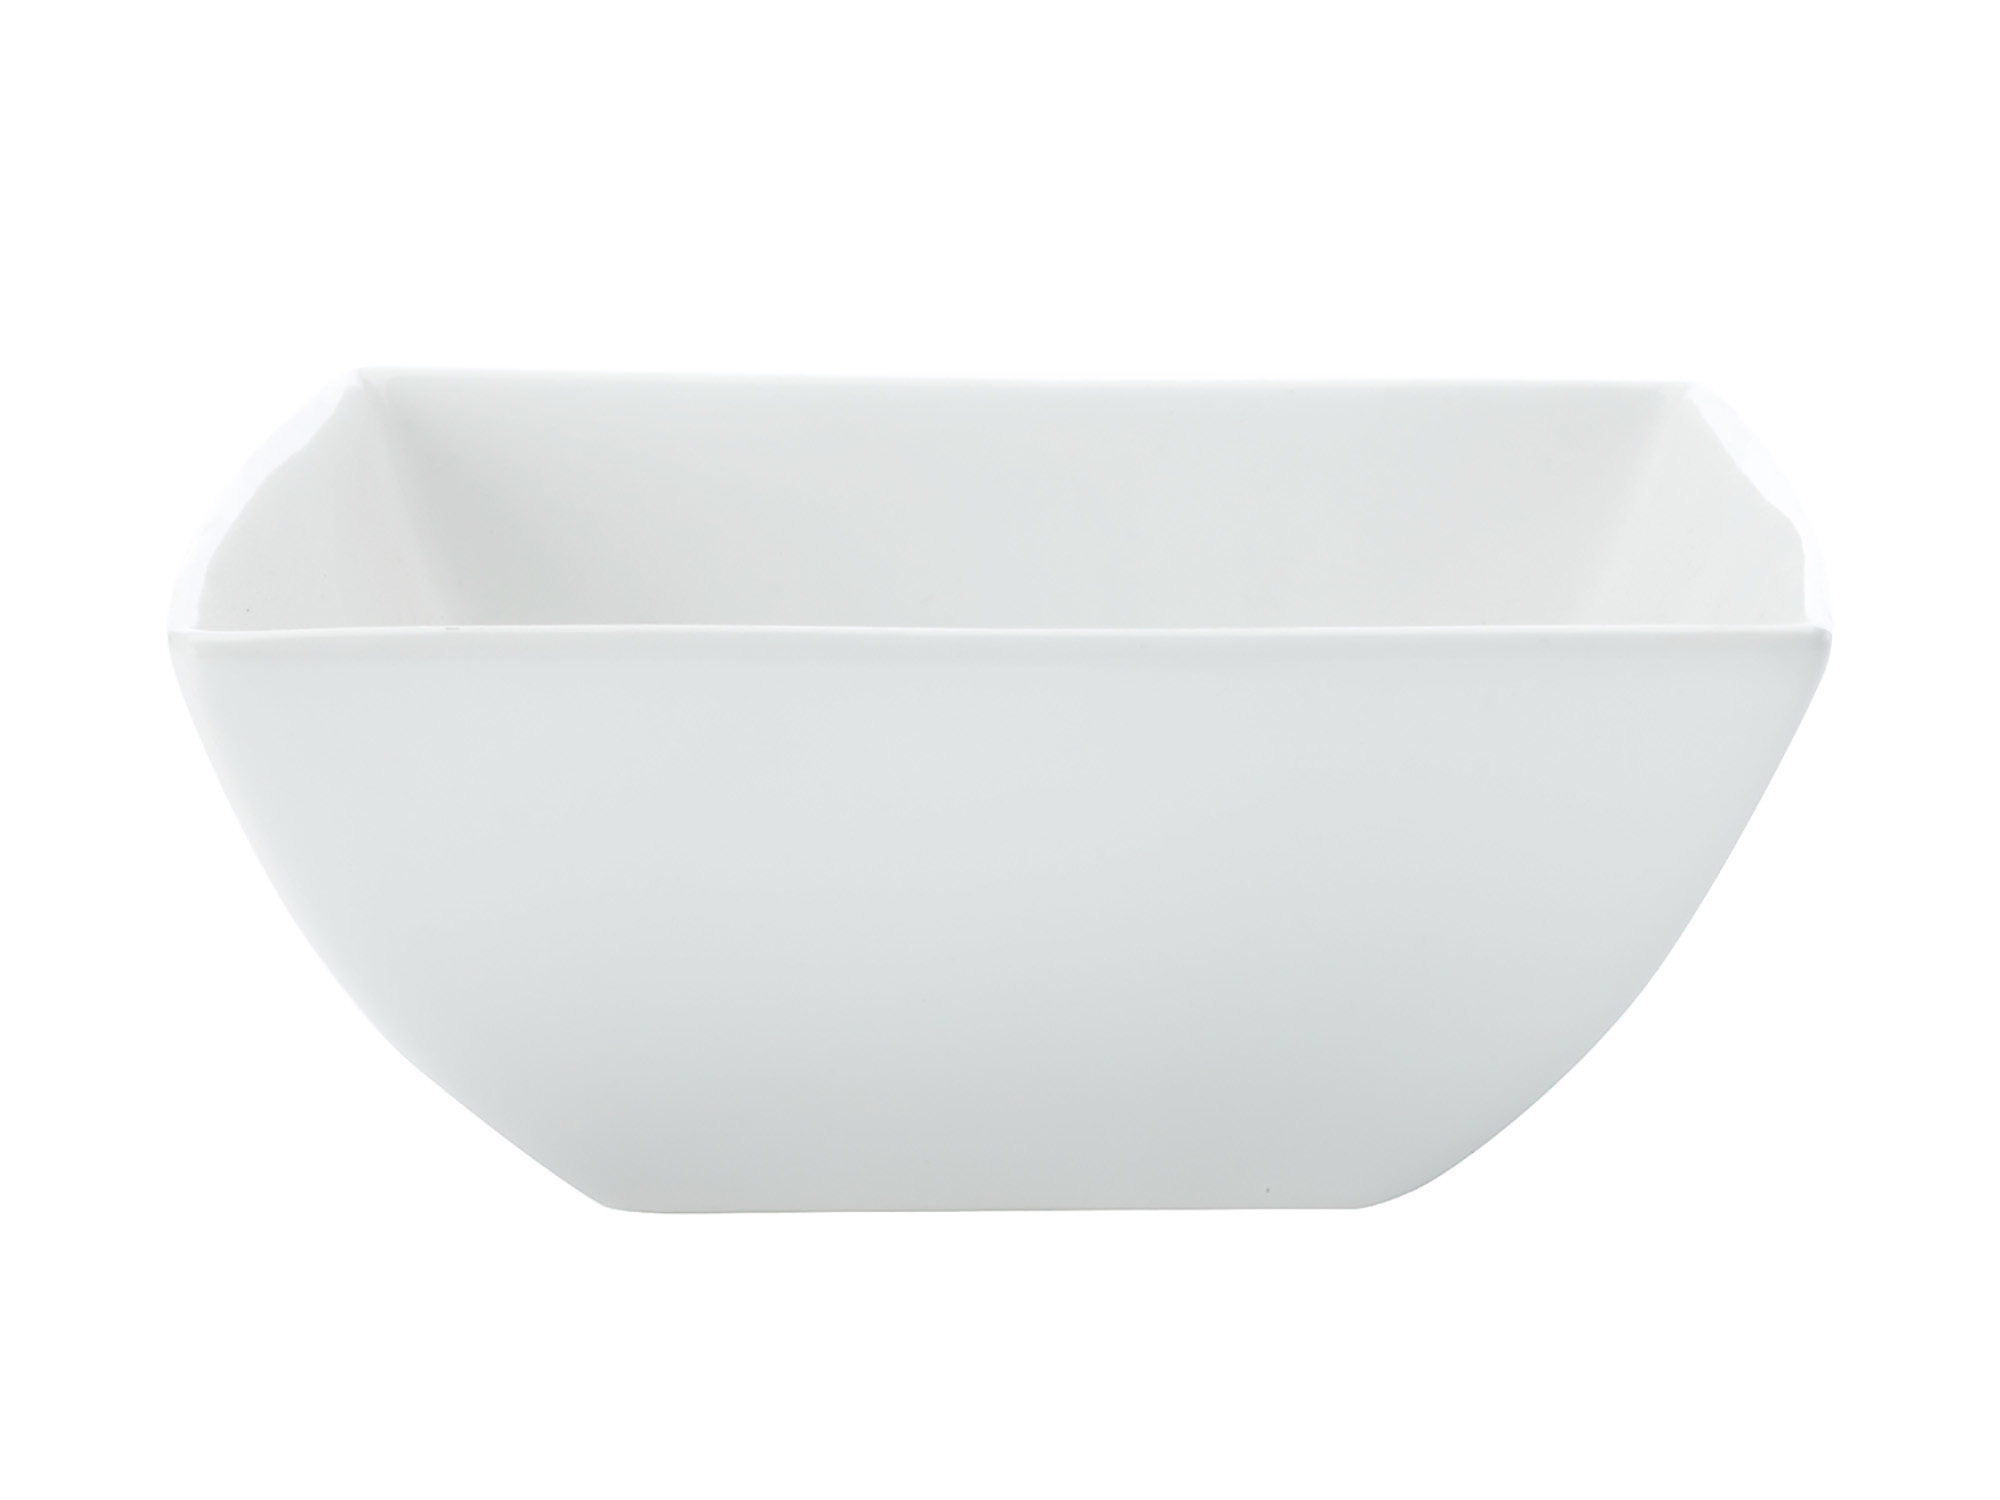 Maxwell & Williams White Basics East Meets West 10Cm Square Side Bowl